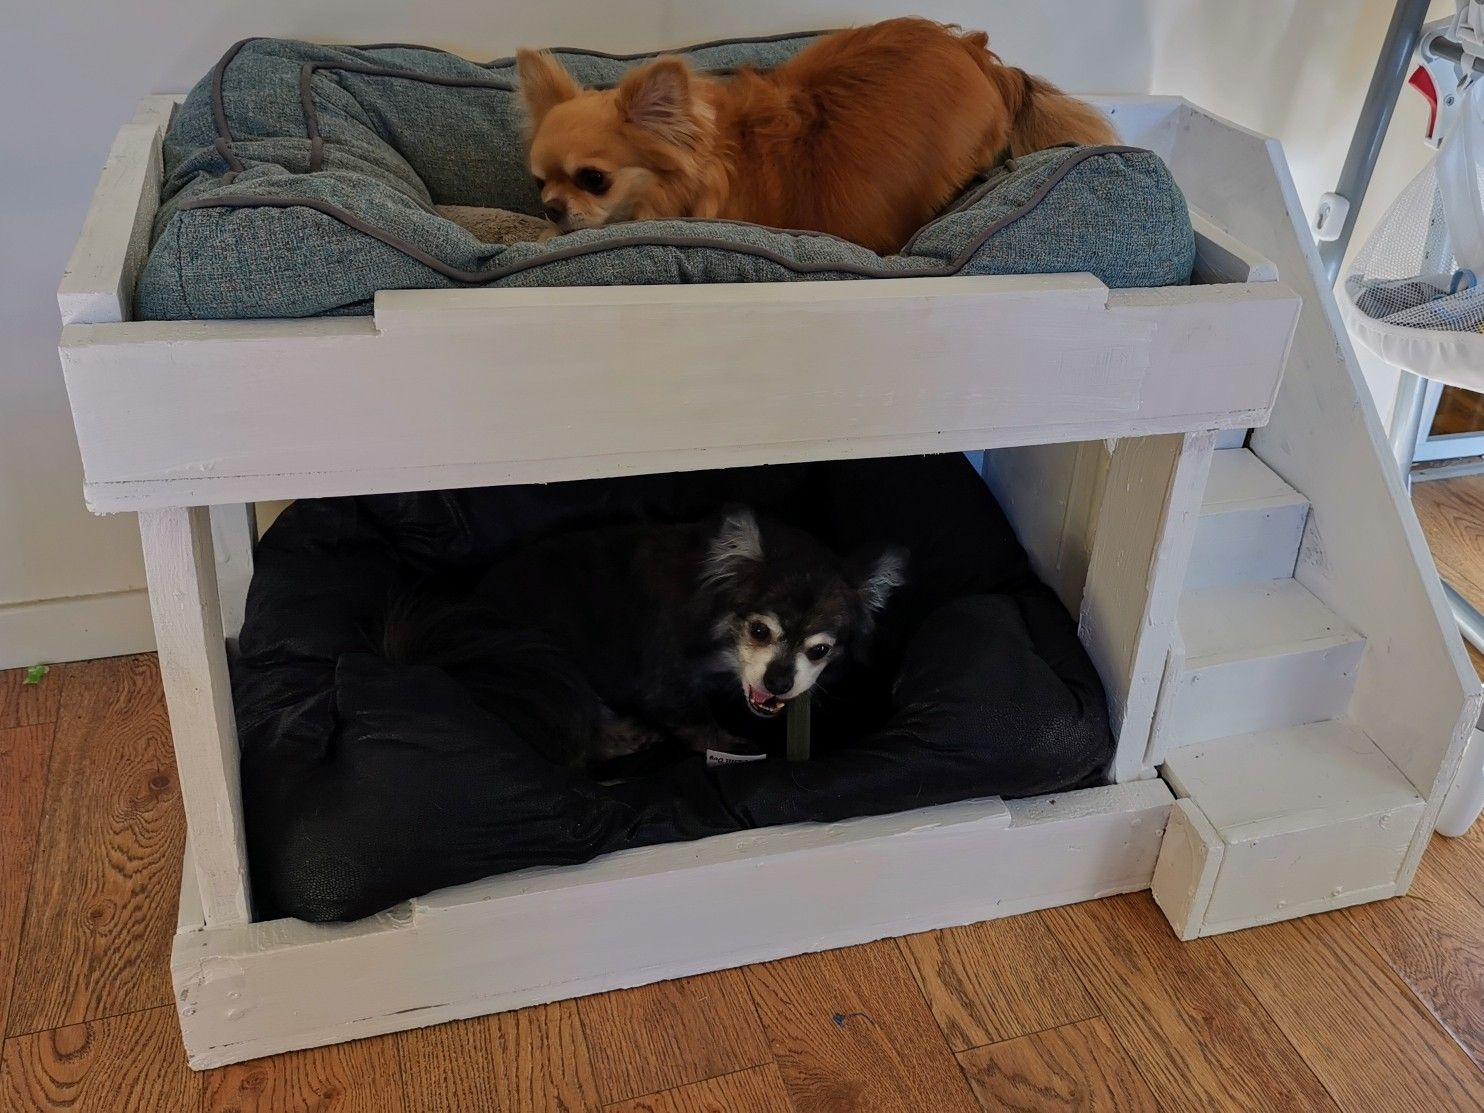 Dog Bunk Bed In 2020 Dog Bunk Beds Pallet Dog Beds Dog Bedroom